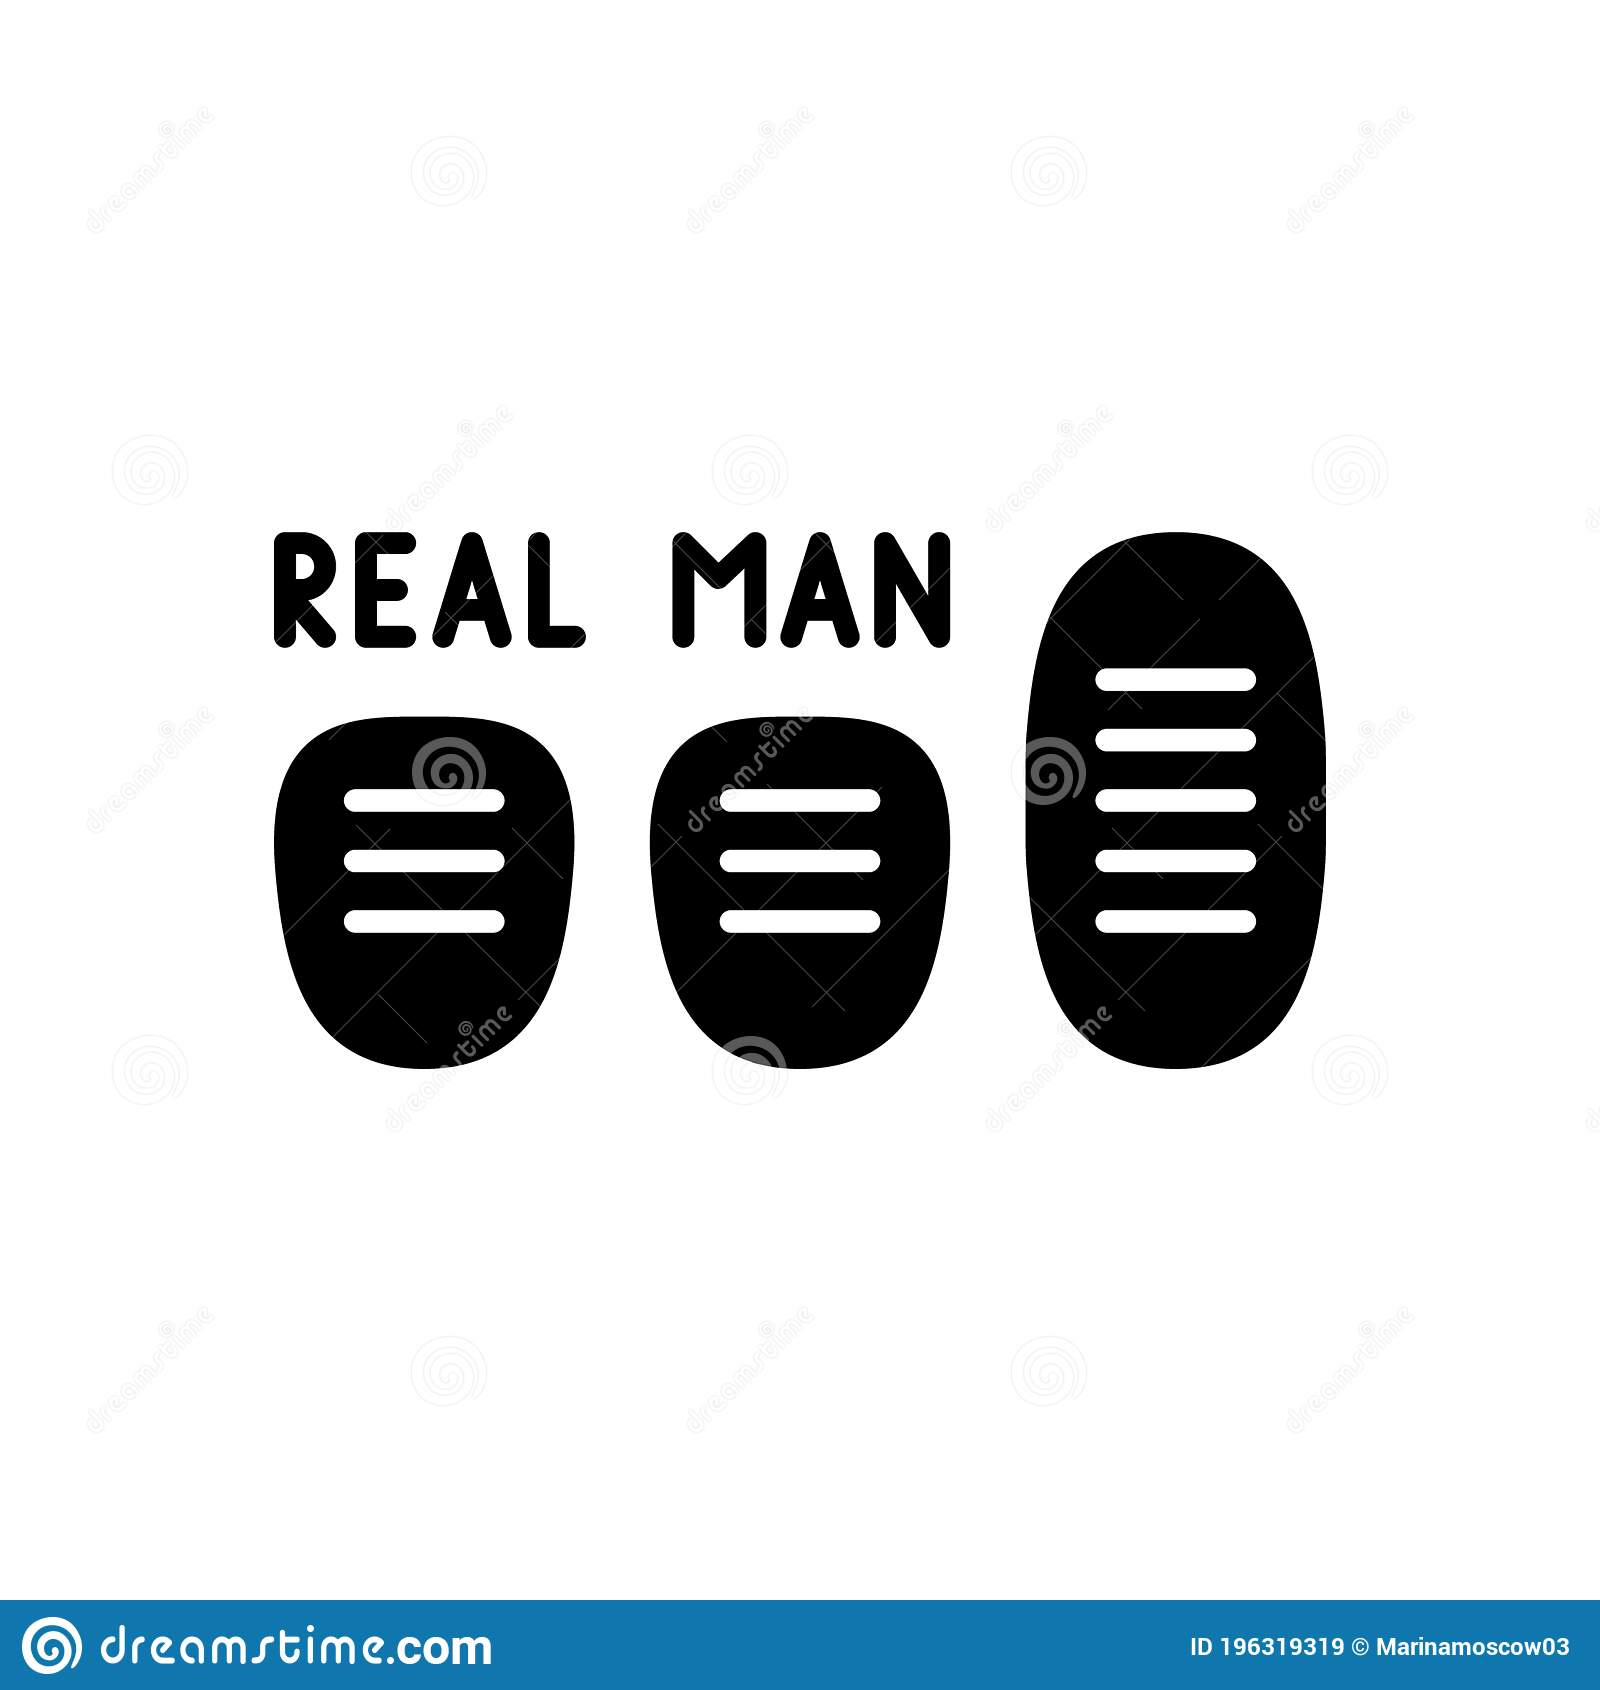 Black Sticker For Auto Three Car Pedals With Lettering Real Man Graphic Silhouette Illustration For Manual Transmission Flat Stock Vector Illustration Of Lettering Silhouette 196319319